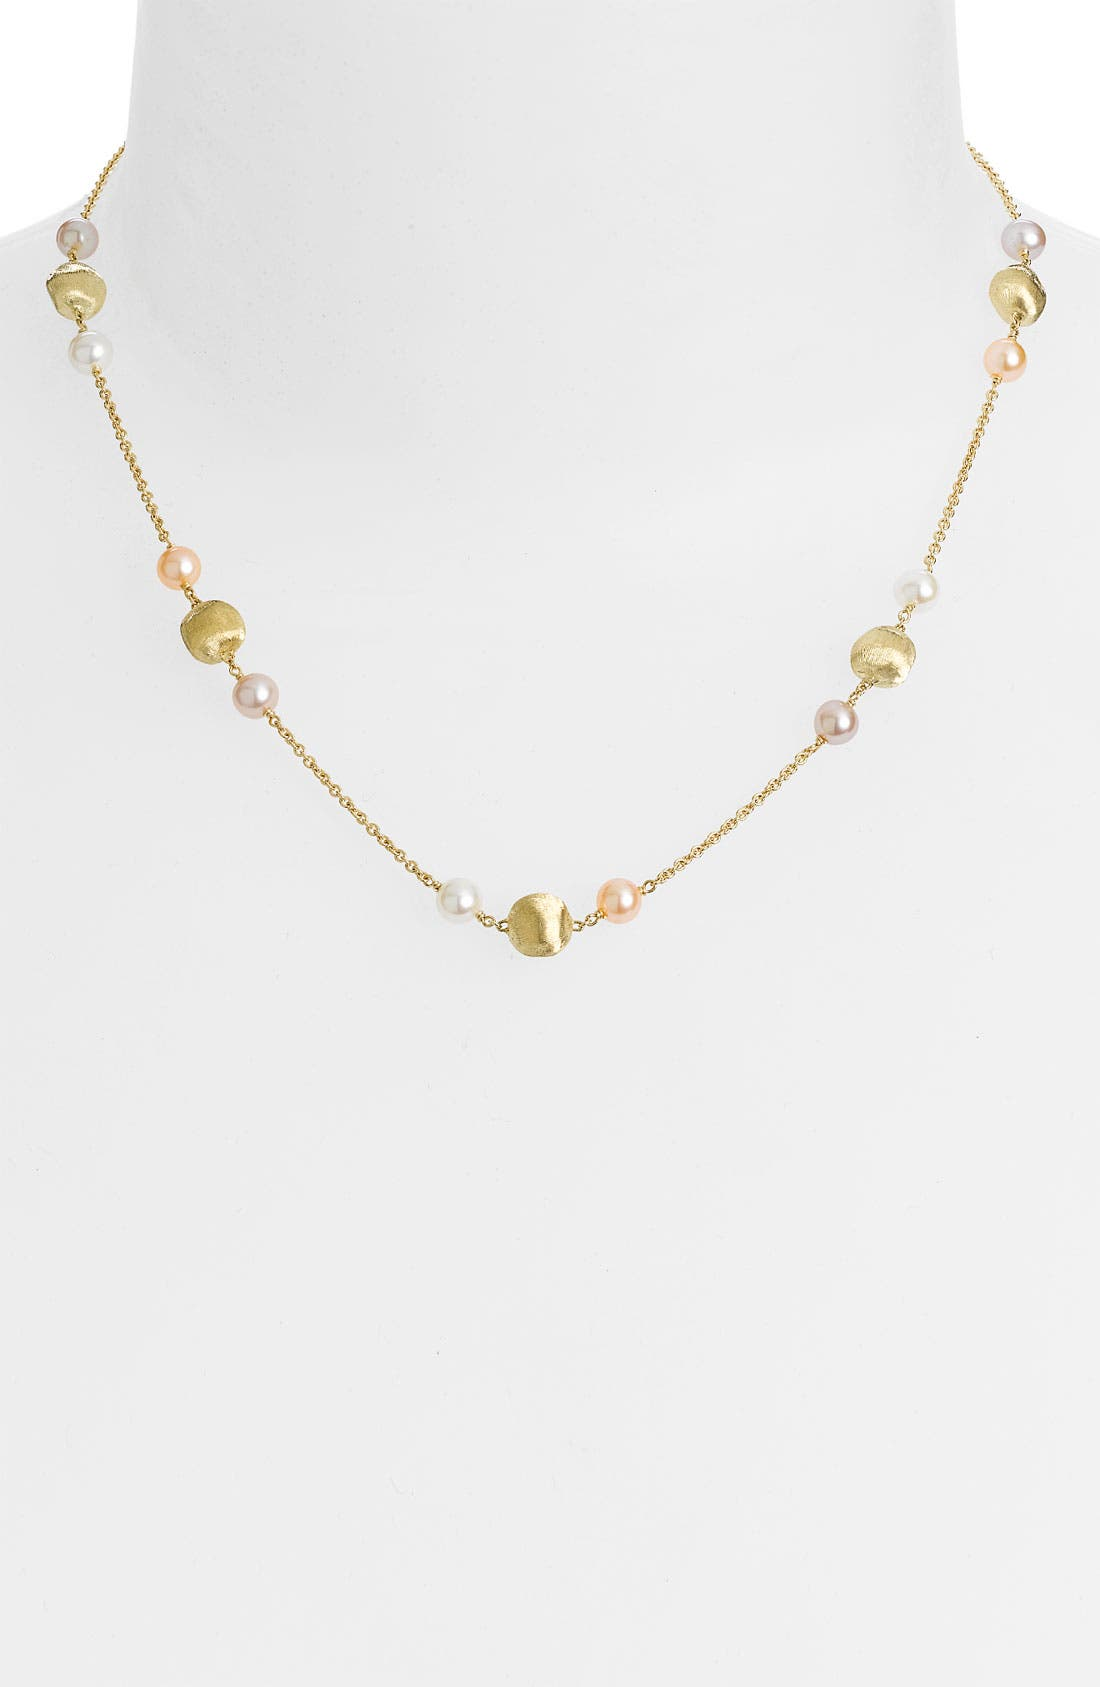 Alternate Image 1 Selected - Marco Bicego 'Africa Gold' Freshwater Pearl & Gold Station Necklace